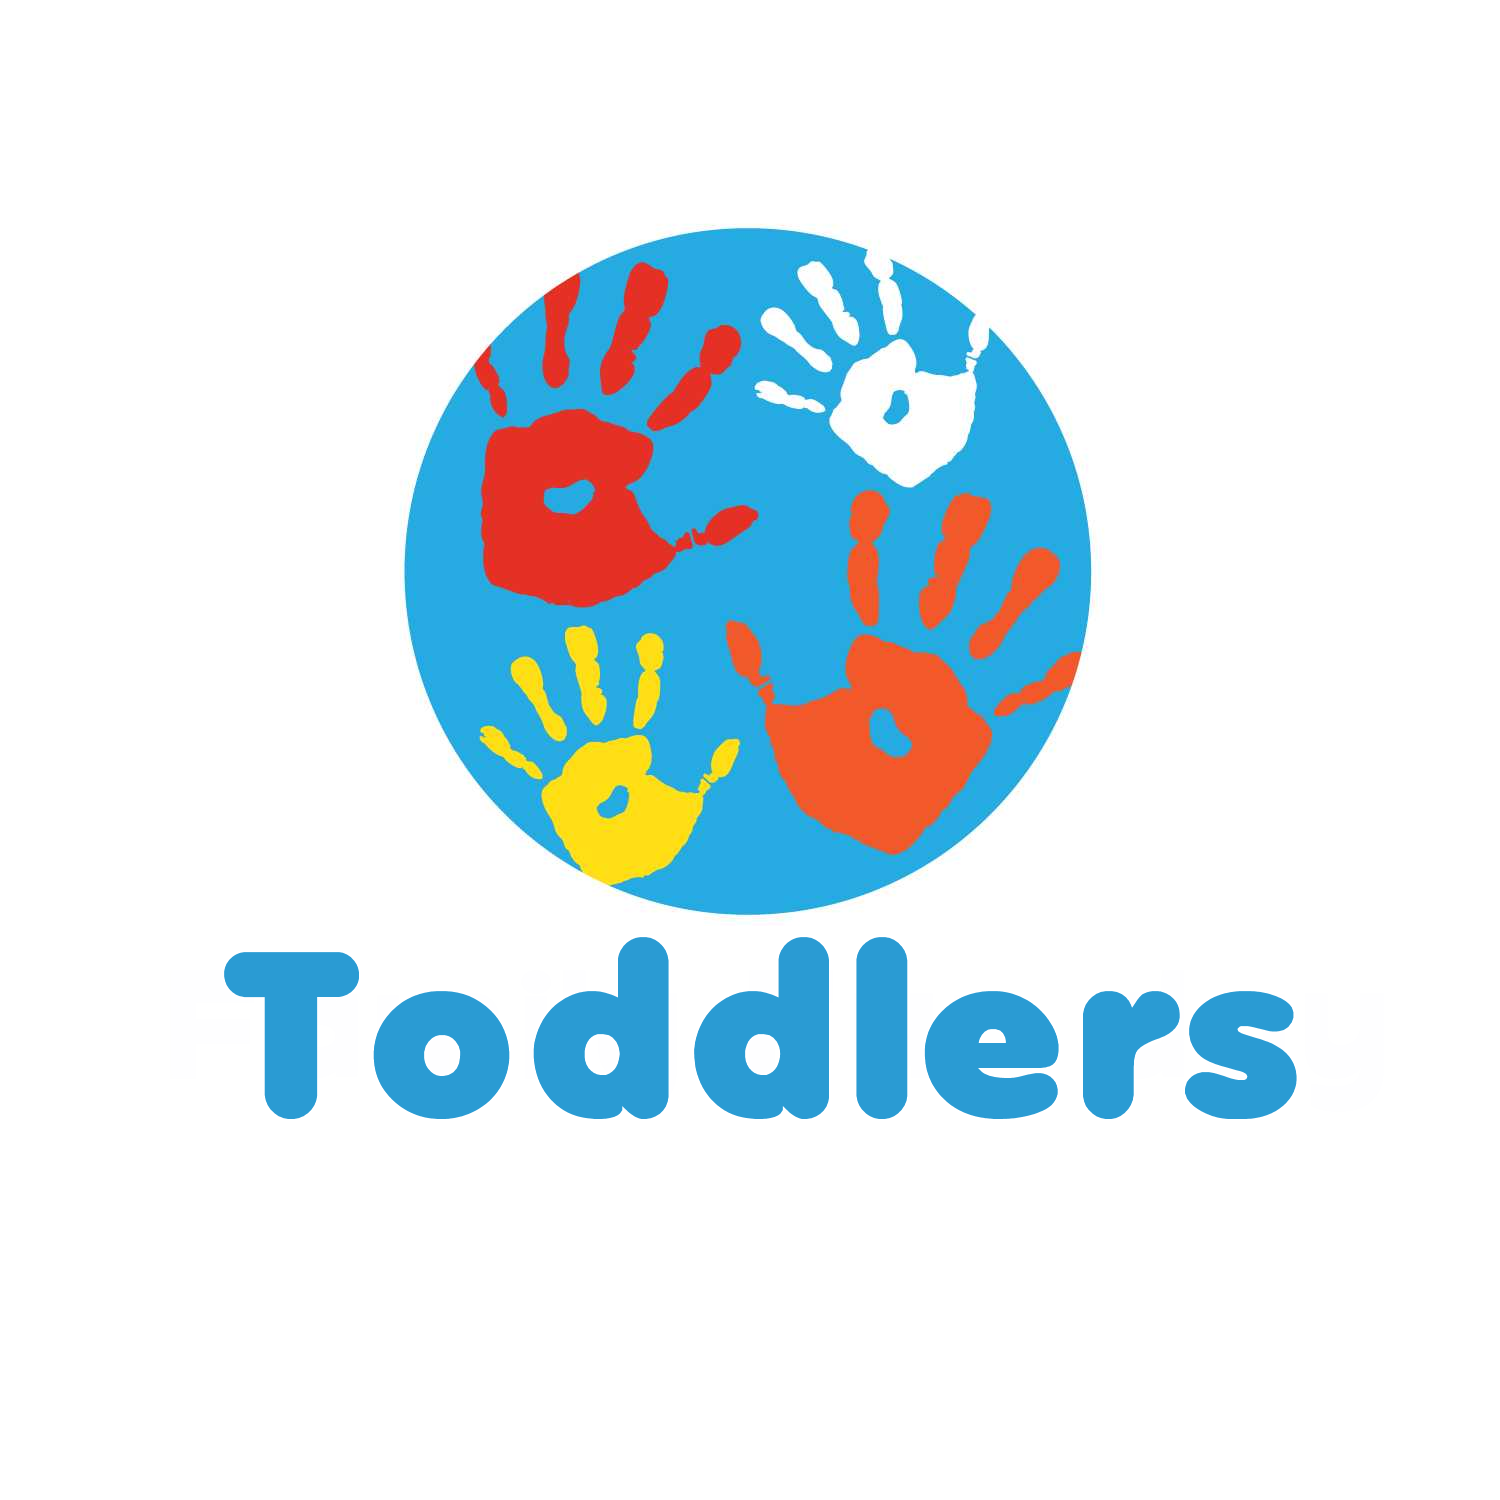 toddlers-1